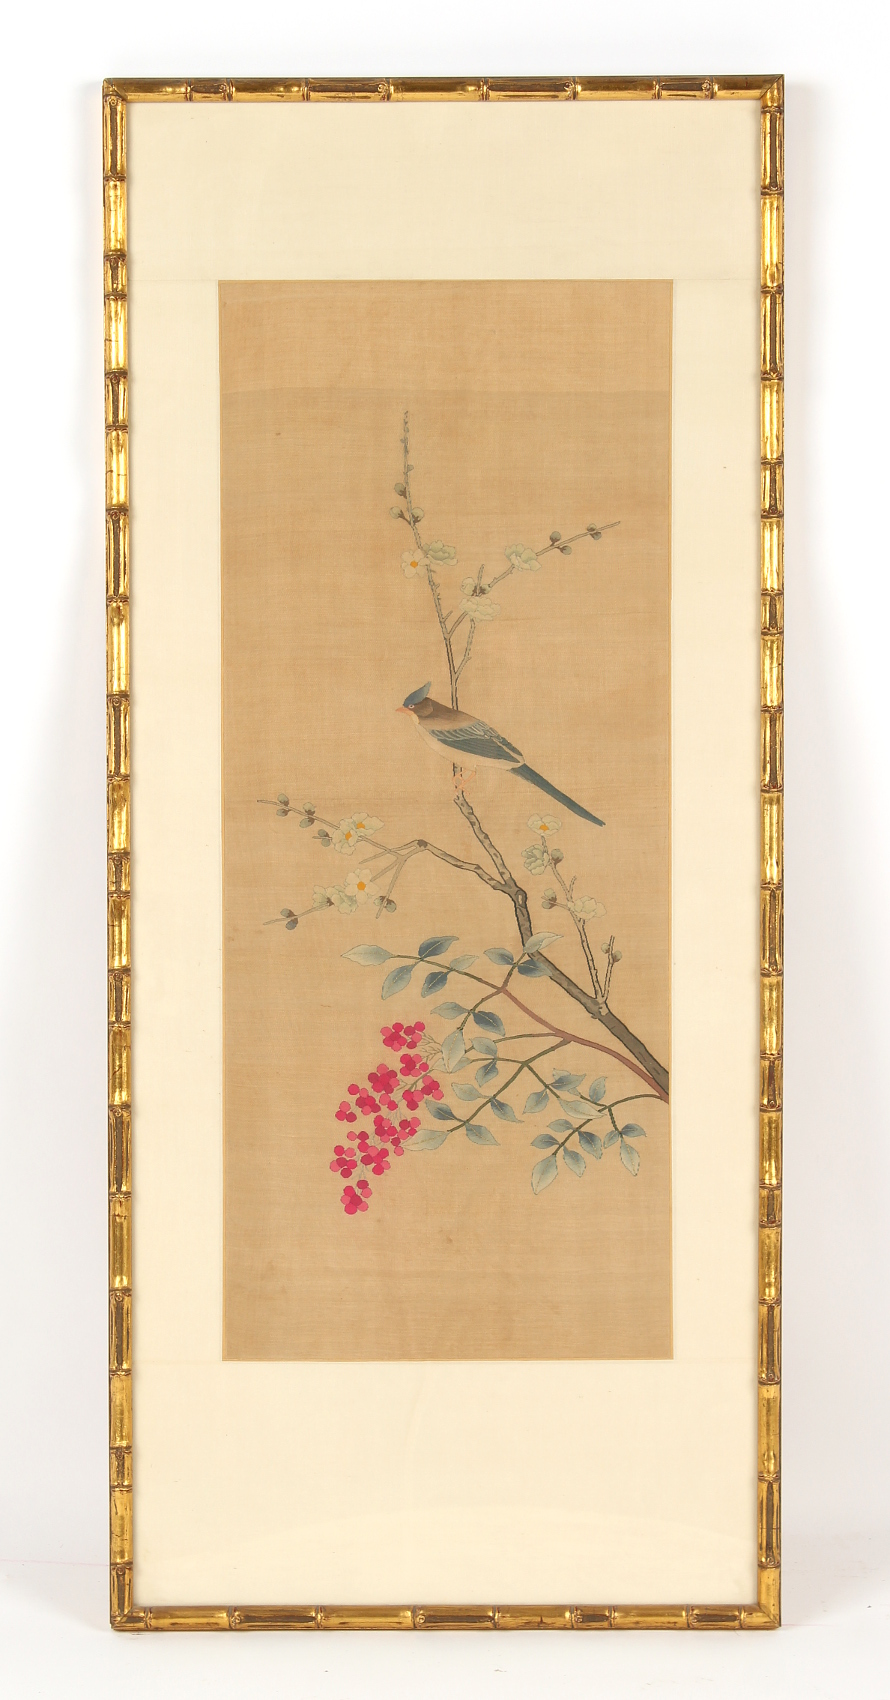 Property of a lady - a kesi silk picture depicting a bird in a blossoming cherry tree with fruit,